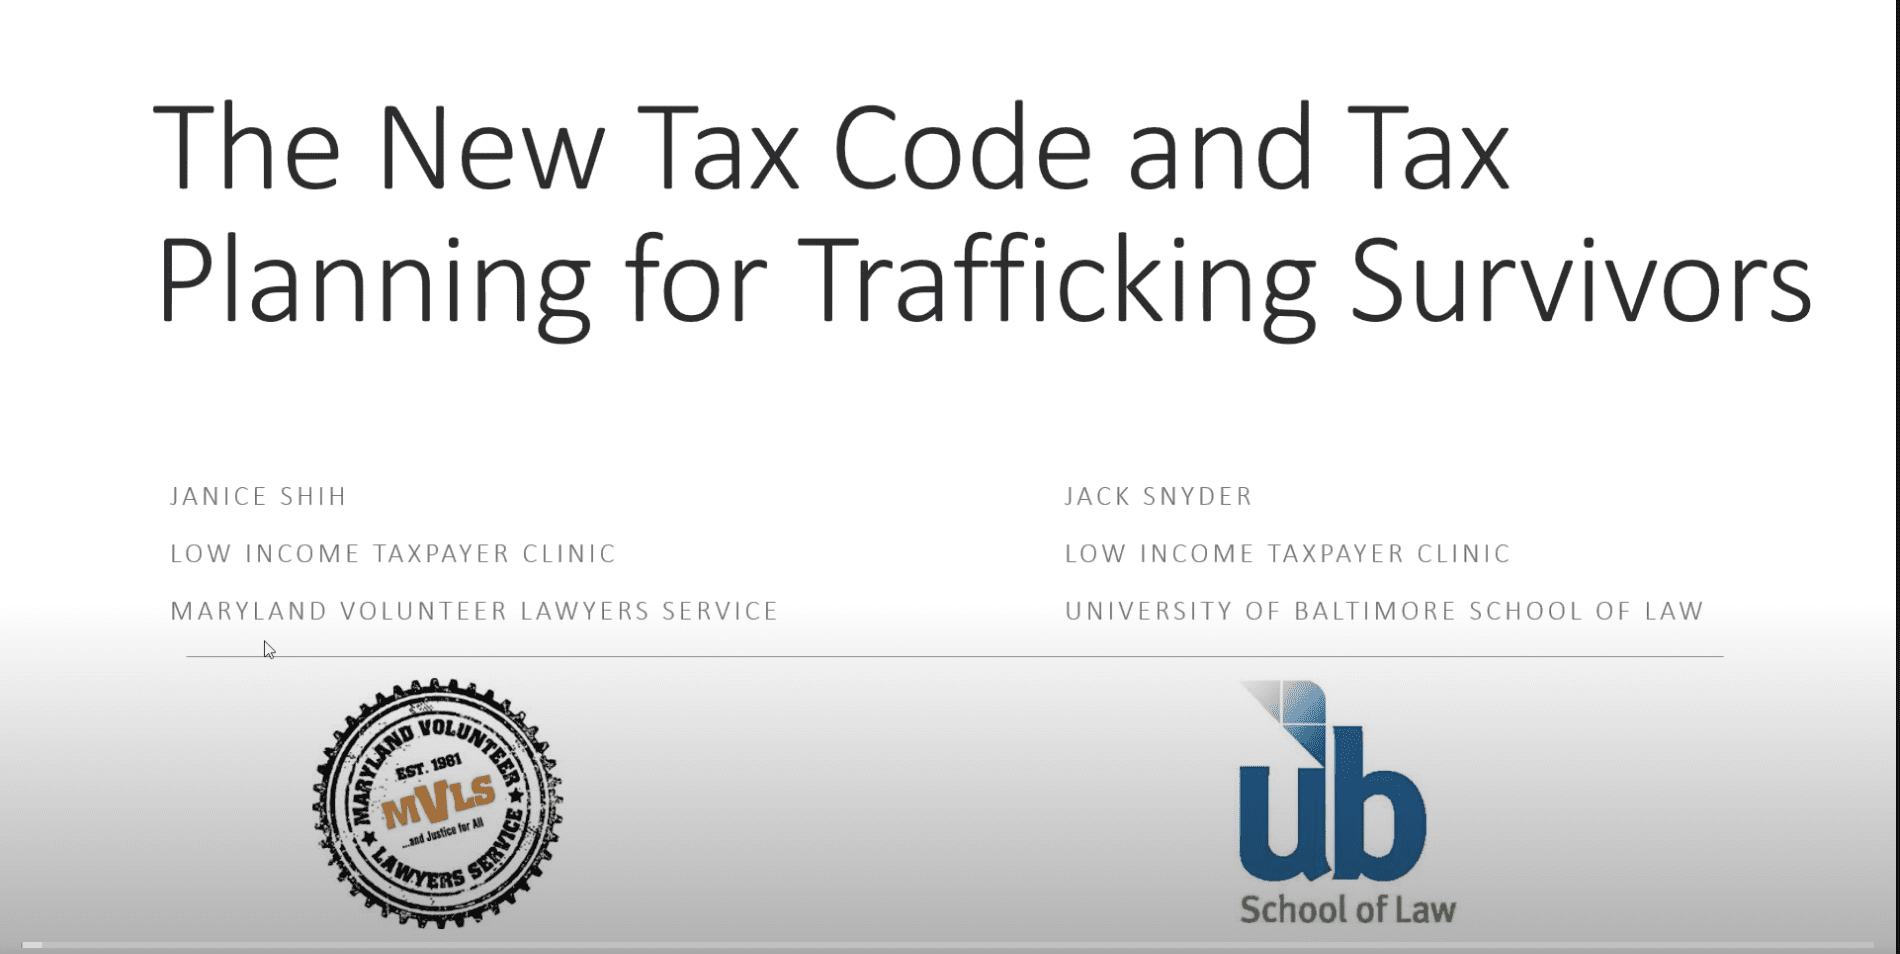 Webinar: Advocating For Trafficking Survivors Facing Tax Controversies